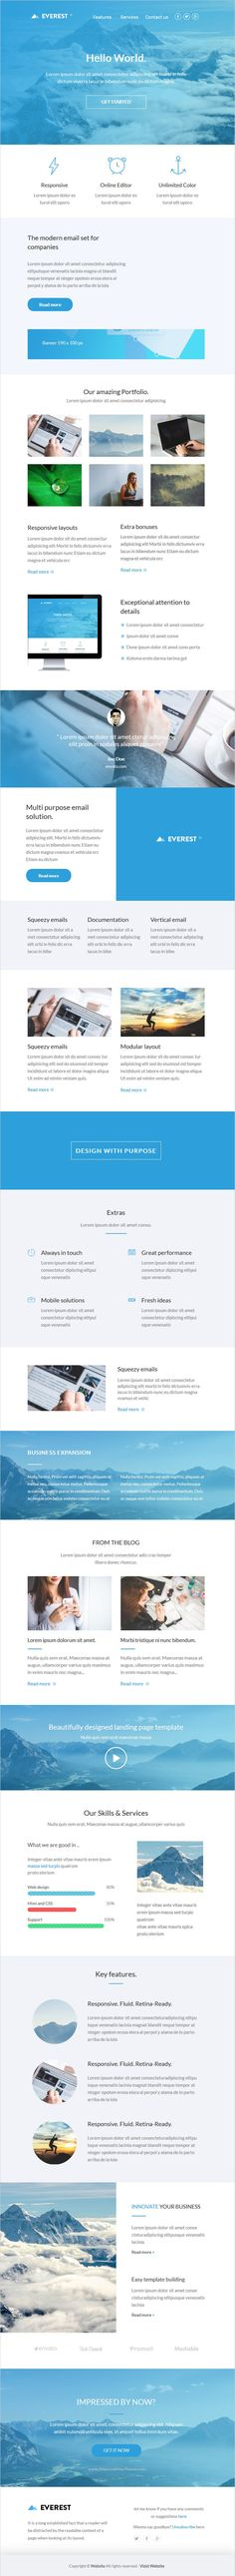 Everest is a beautifully design #viral #HTML #email template + builder 2.0 download now➯ https://themeforest.net/item/everest-html-email-template-builder-20/16928869?ref=Datasata